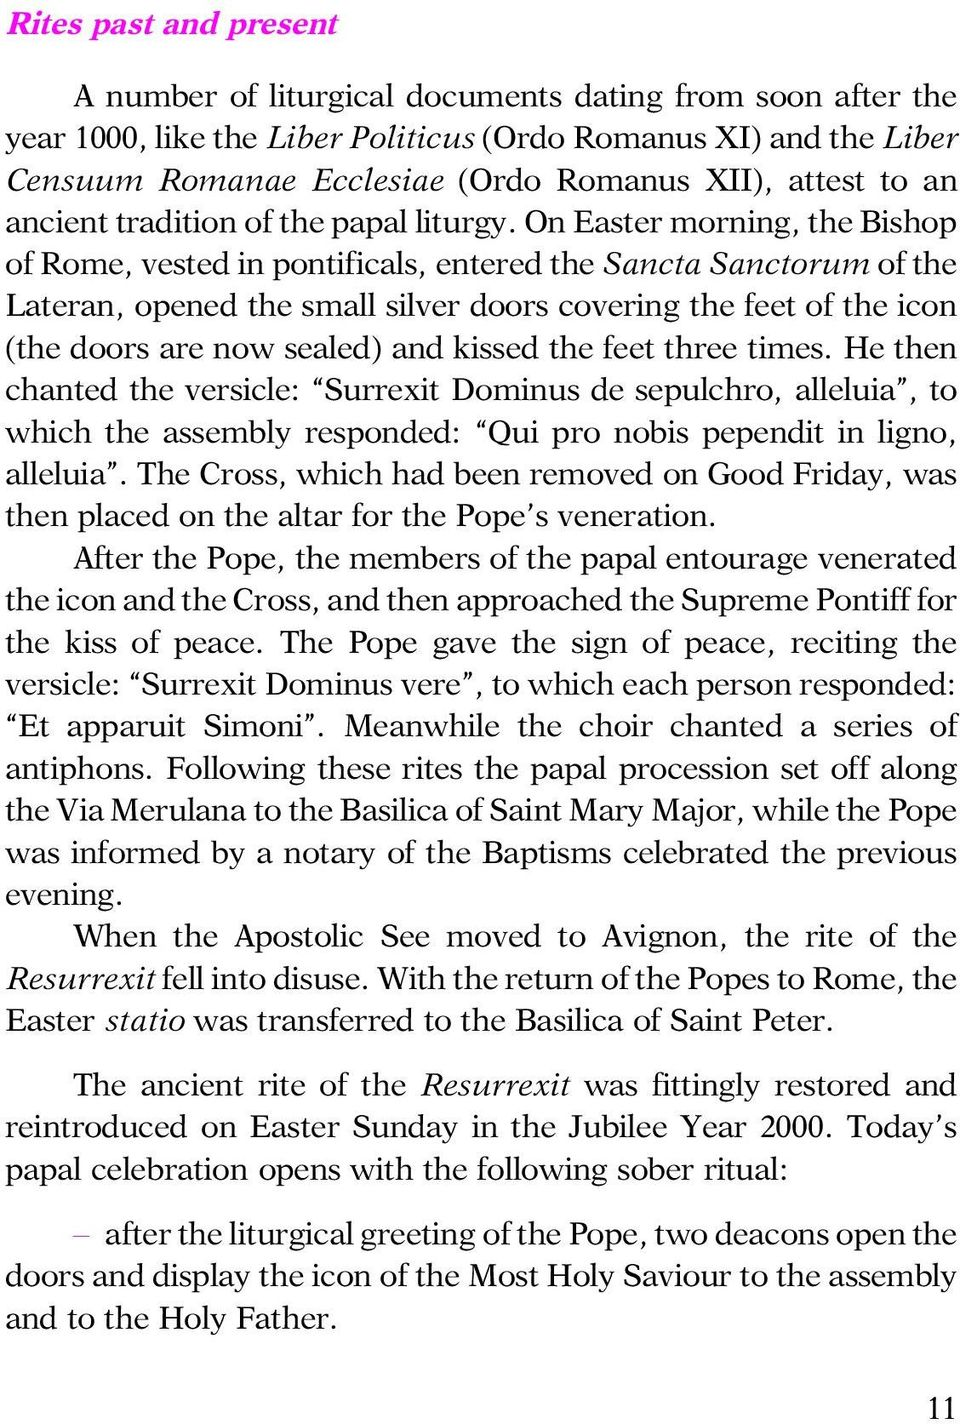 On Easter morning, the Bishop of Rome, vested in pontificals, entered the Sancta Sanctorum of the Lateran, opened the small silver doors covering the feet of the icon (the doors are now sealed) and